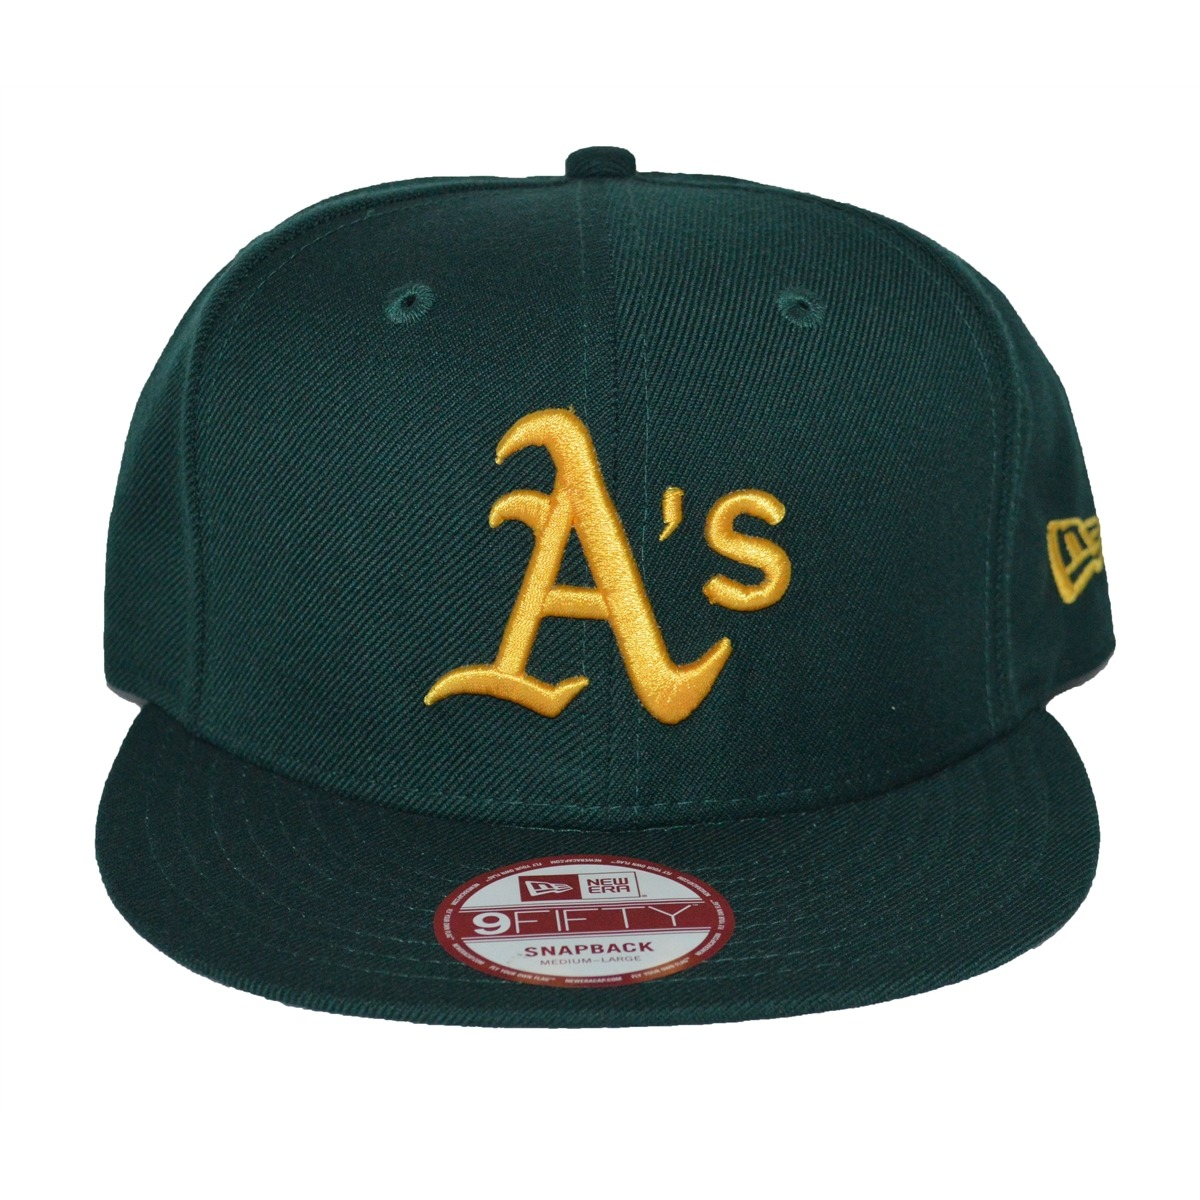 bone new era aba reta 950 basic green mlb oakland athletics. Carregando  zoom. d000deffc14